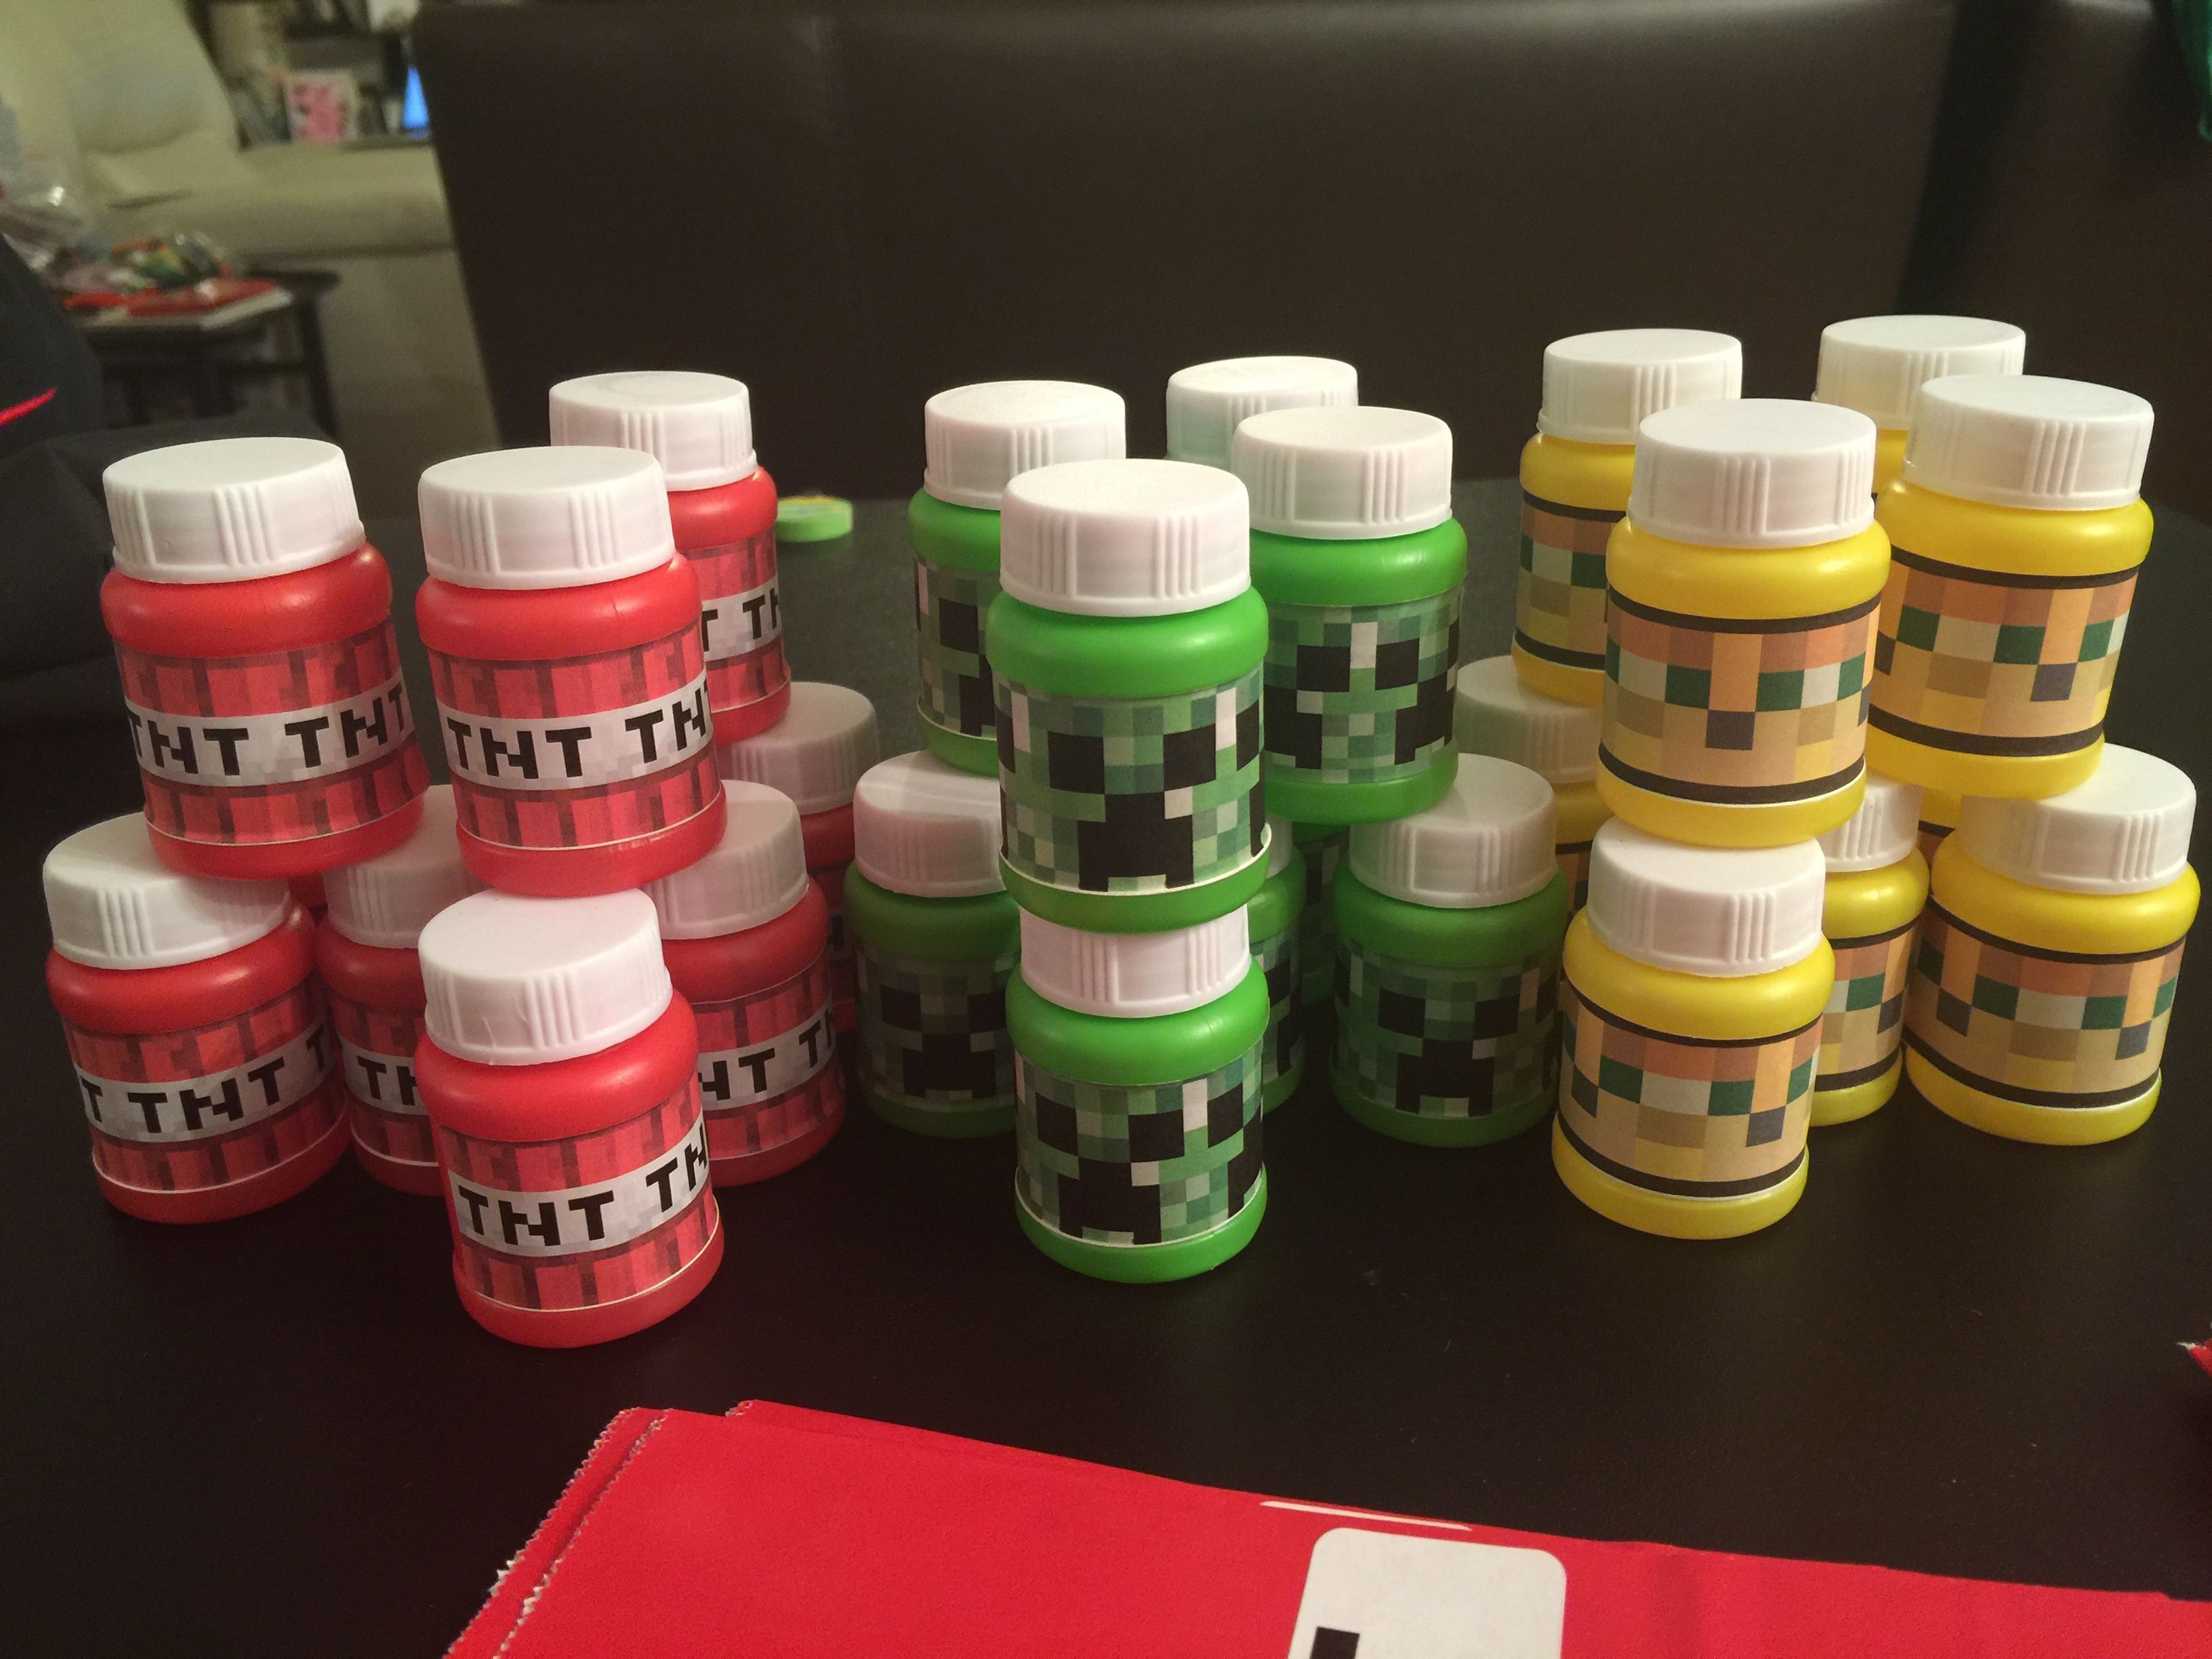 Mine craft birthday ideas - Minecraft Bubbles Party Favor Print Minecraft Faces On Mailing Labels And Attach To Favor Bubbles